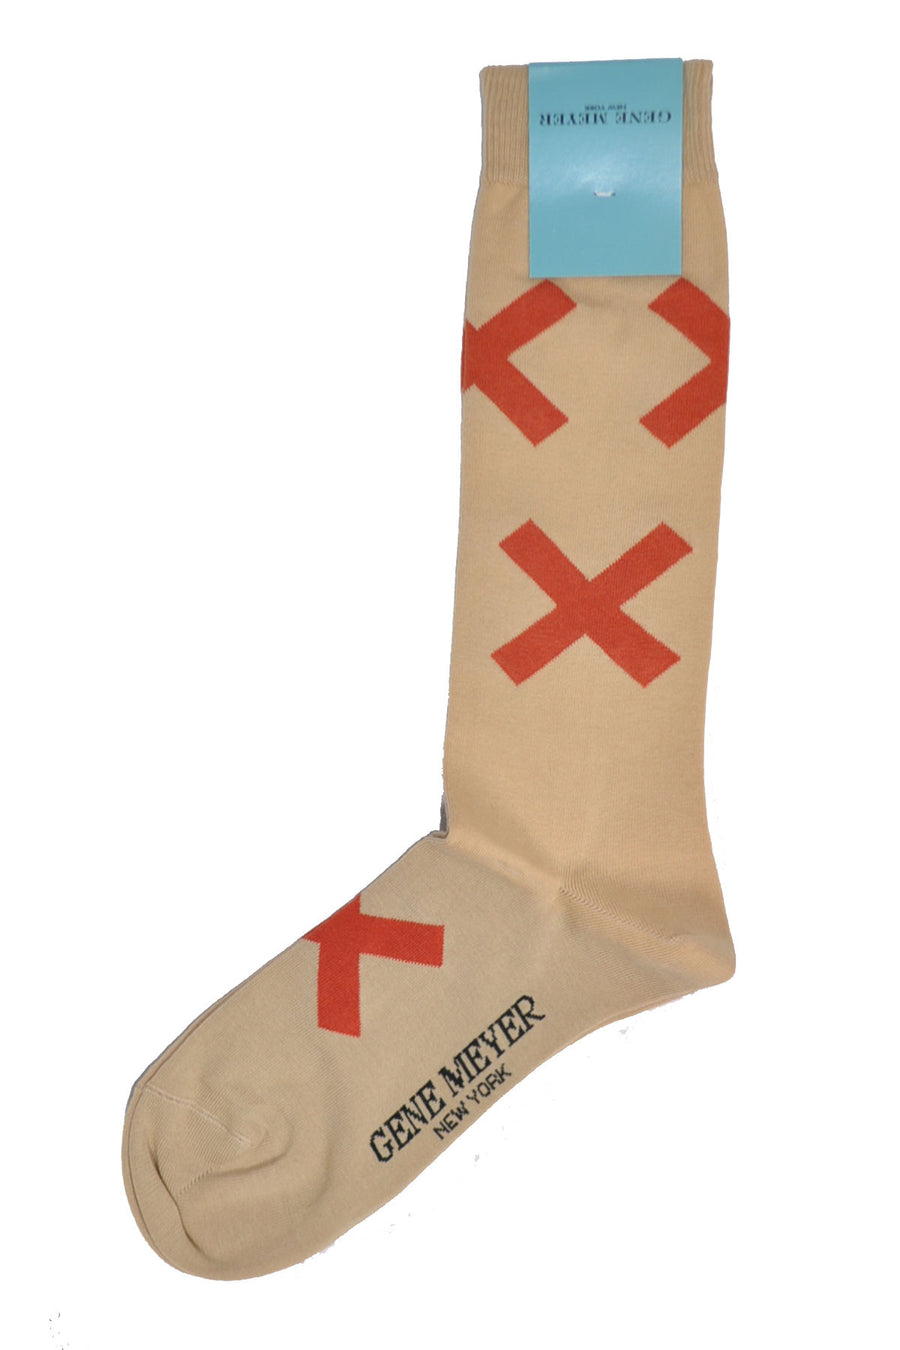 Gene Meyer Socks Beige Red Cross